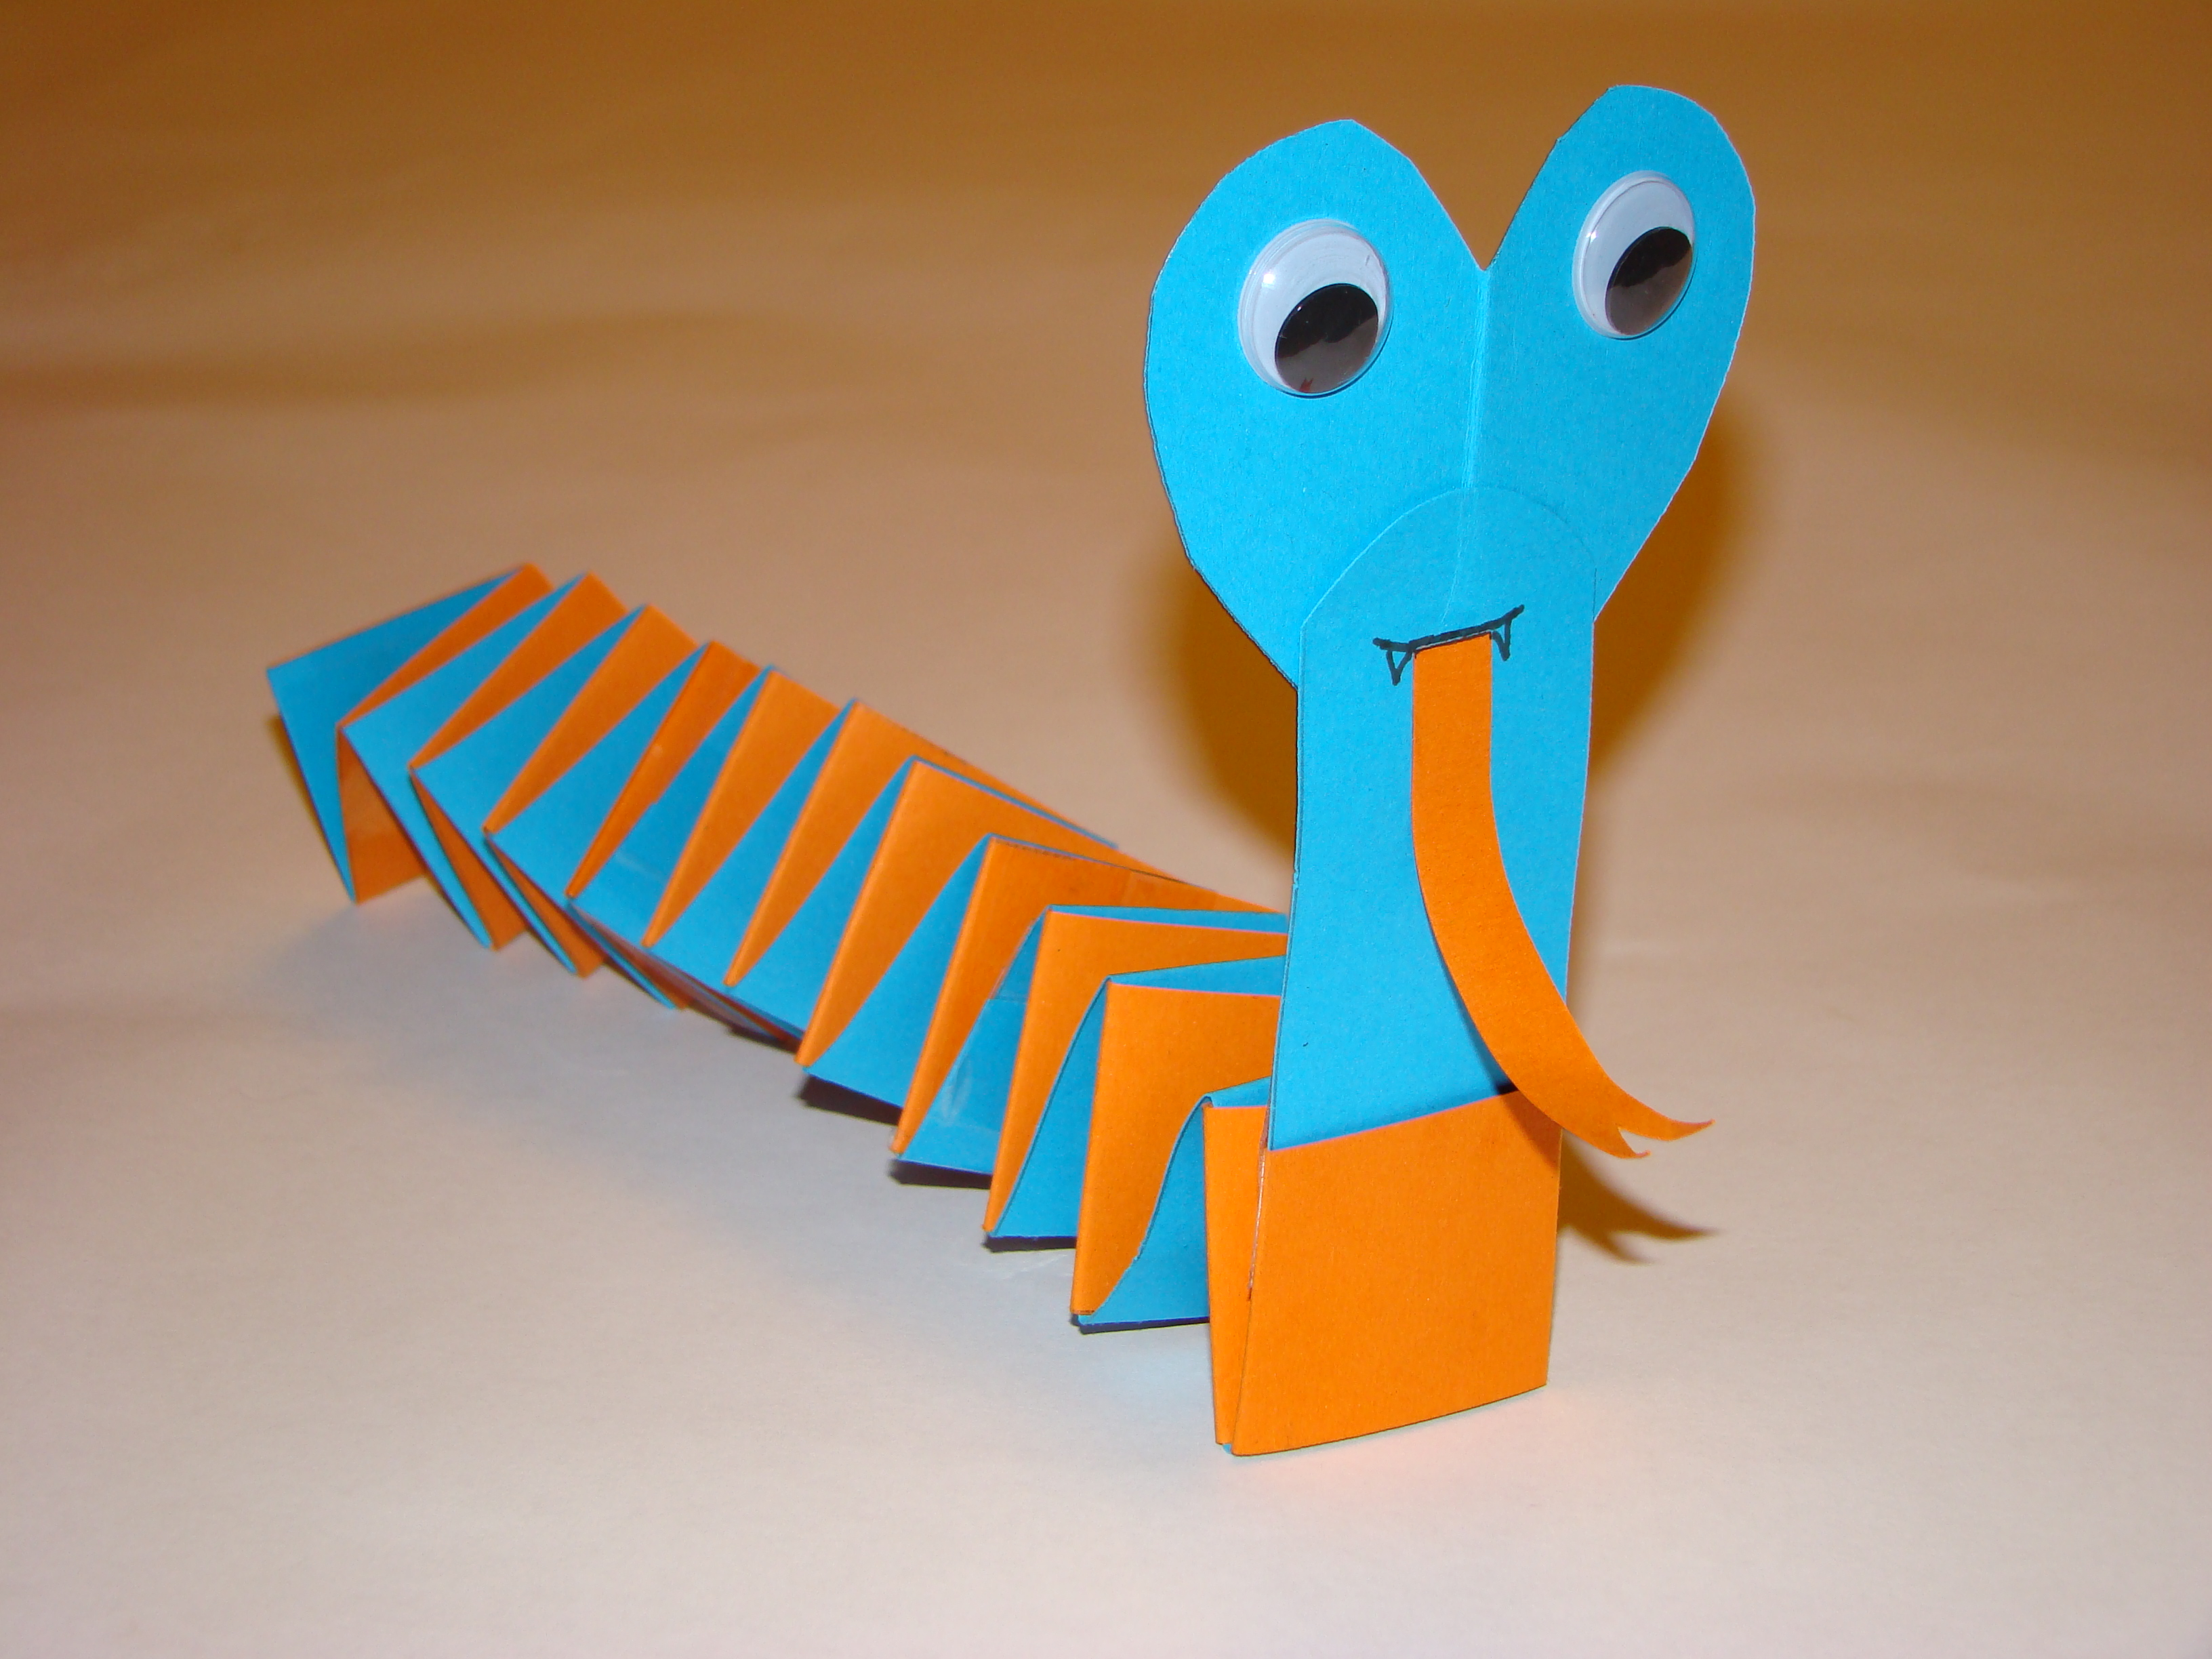 Snake Craft Idea For Kids